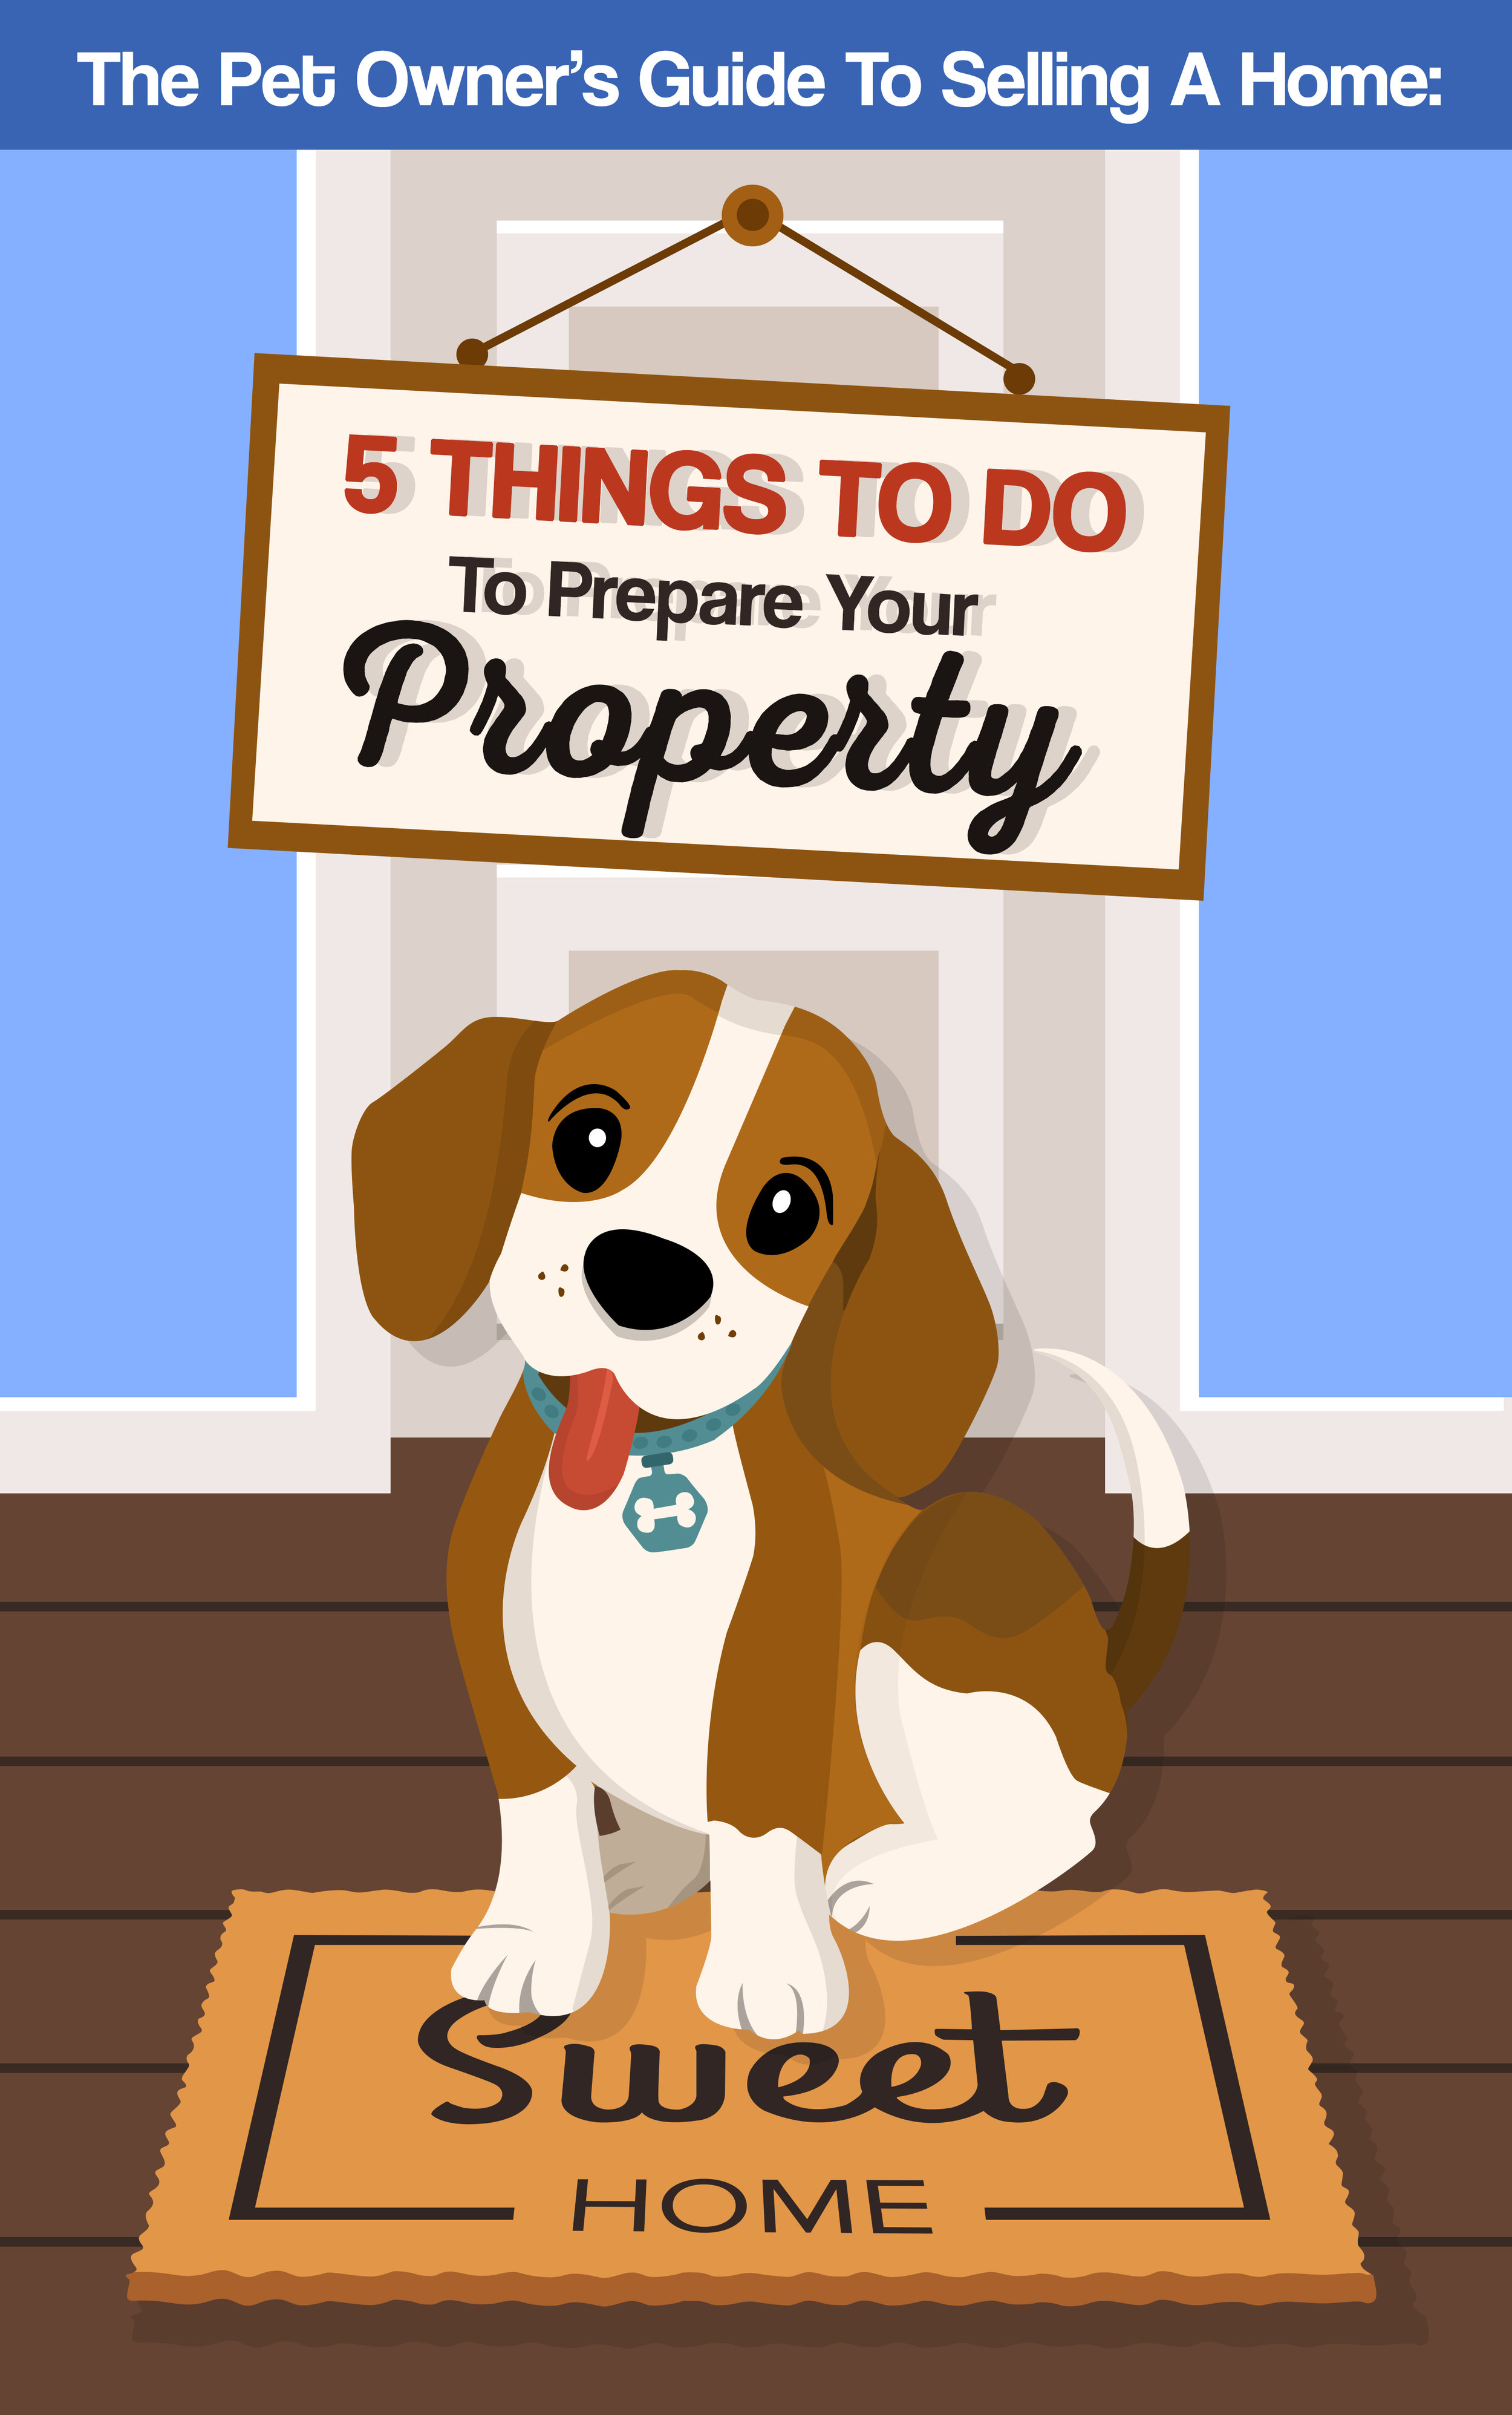 The Pet Owner's Guide To Selling A Home.jpg